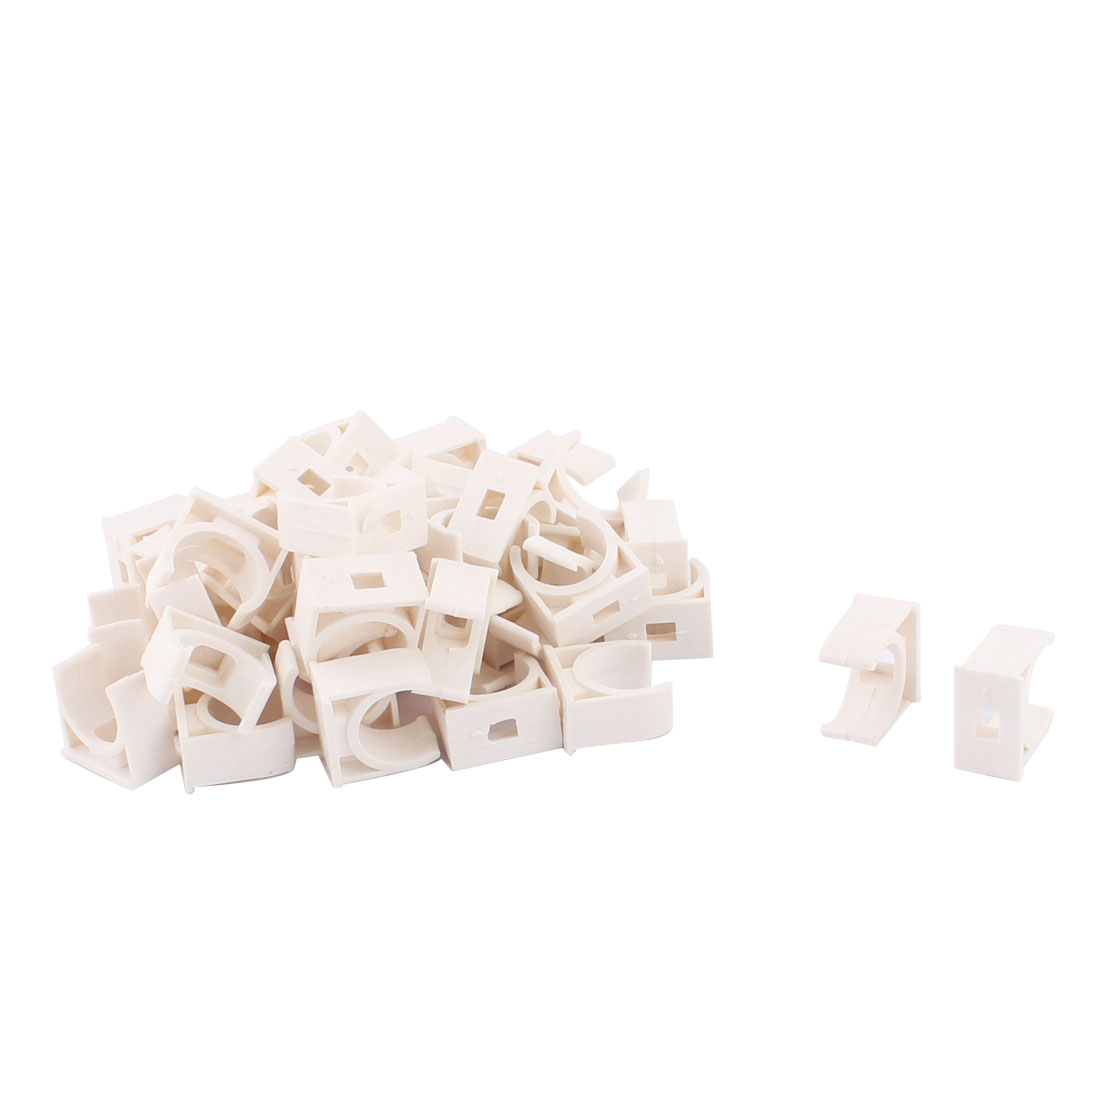 Water Tube Hose Pipe Multifunctional Fittings Parts Clamps Clips 20mm Dia 50pcs